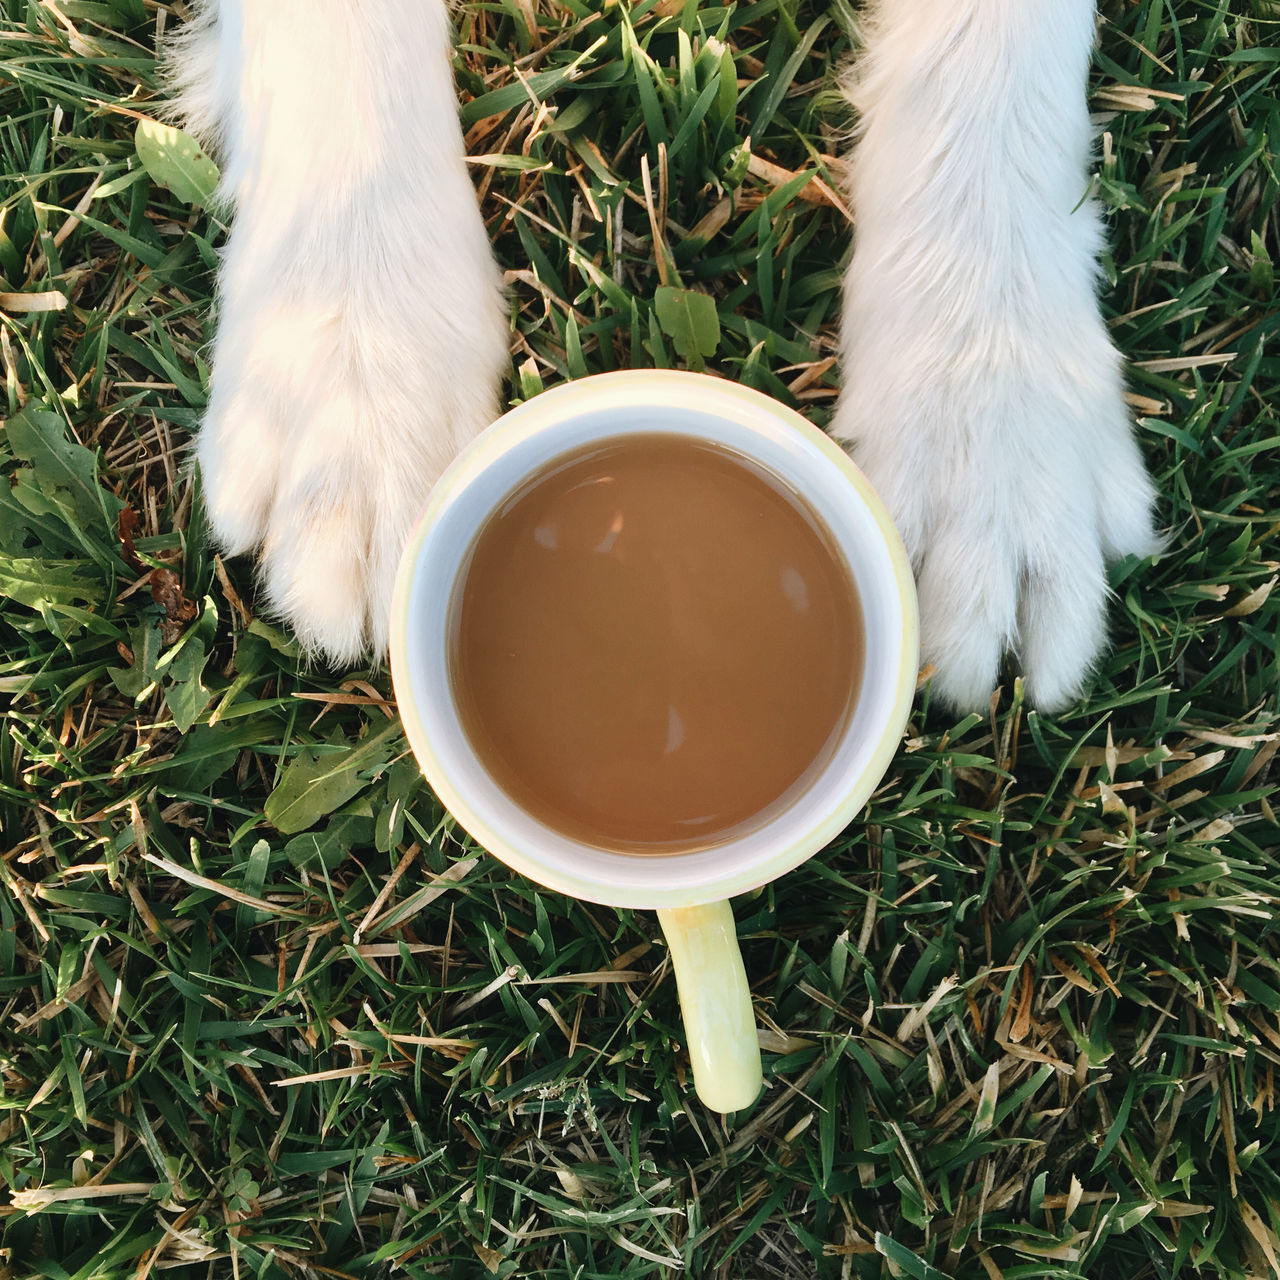 Animal Themes Close-up Day Dog And Cup Dog Paws Domestic Animals Grass Mammal Nature No People Outdoors Overhead Shot Paws Pets